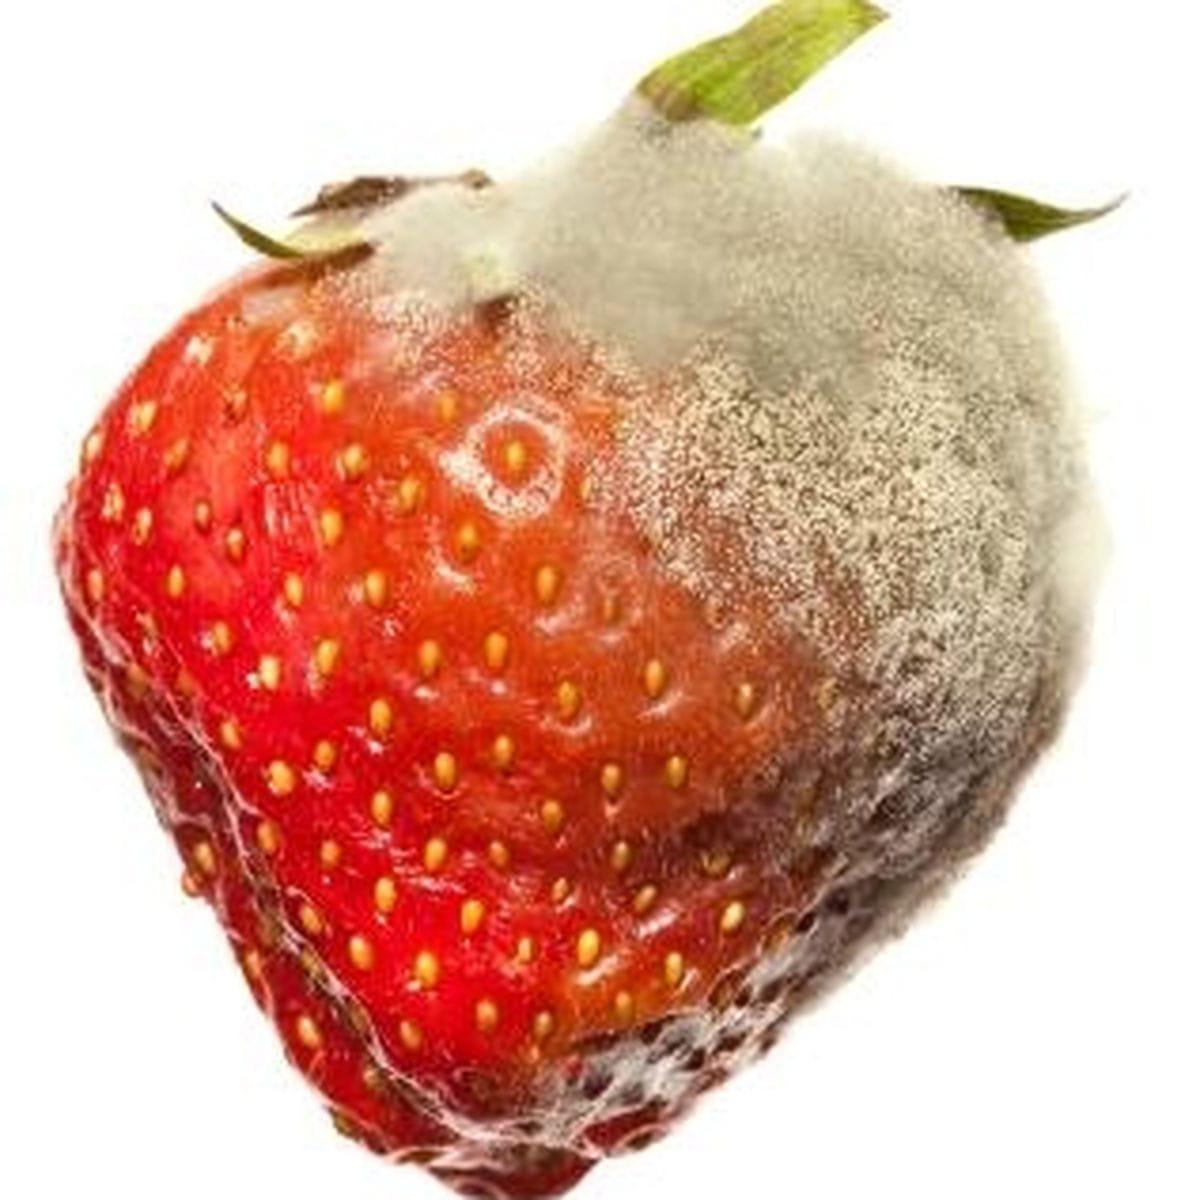 Do You Eat Moldy Fruit Like Strawberries Or Bananas Fruit That Is On Its Way Out Or Should Be Thrown Out Amirite